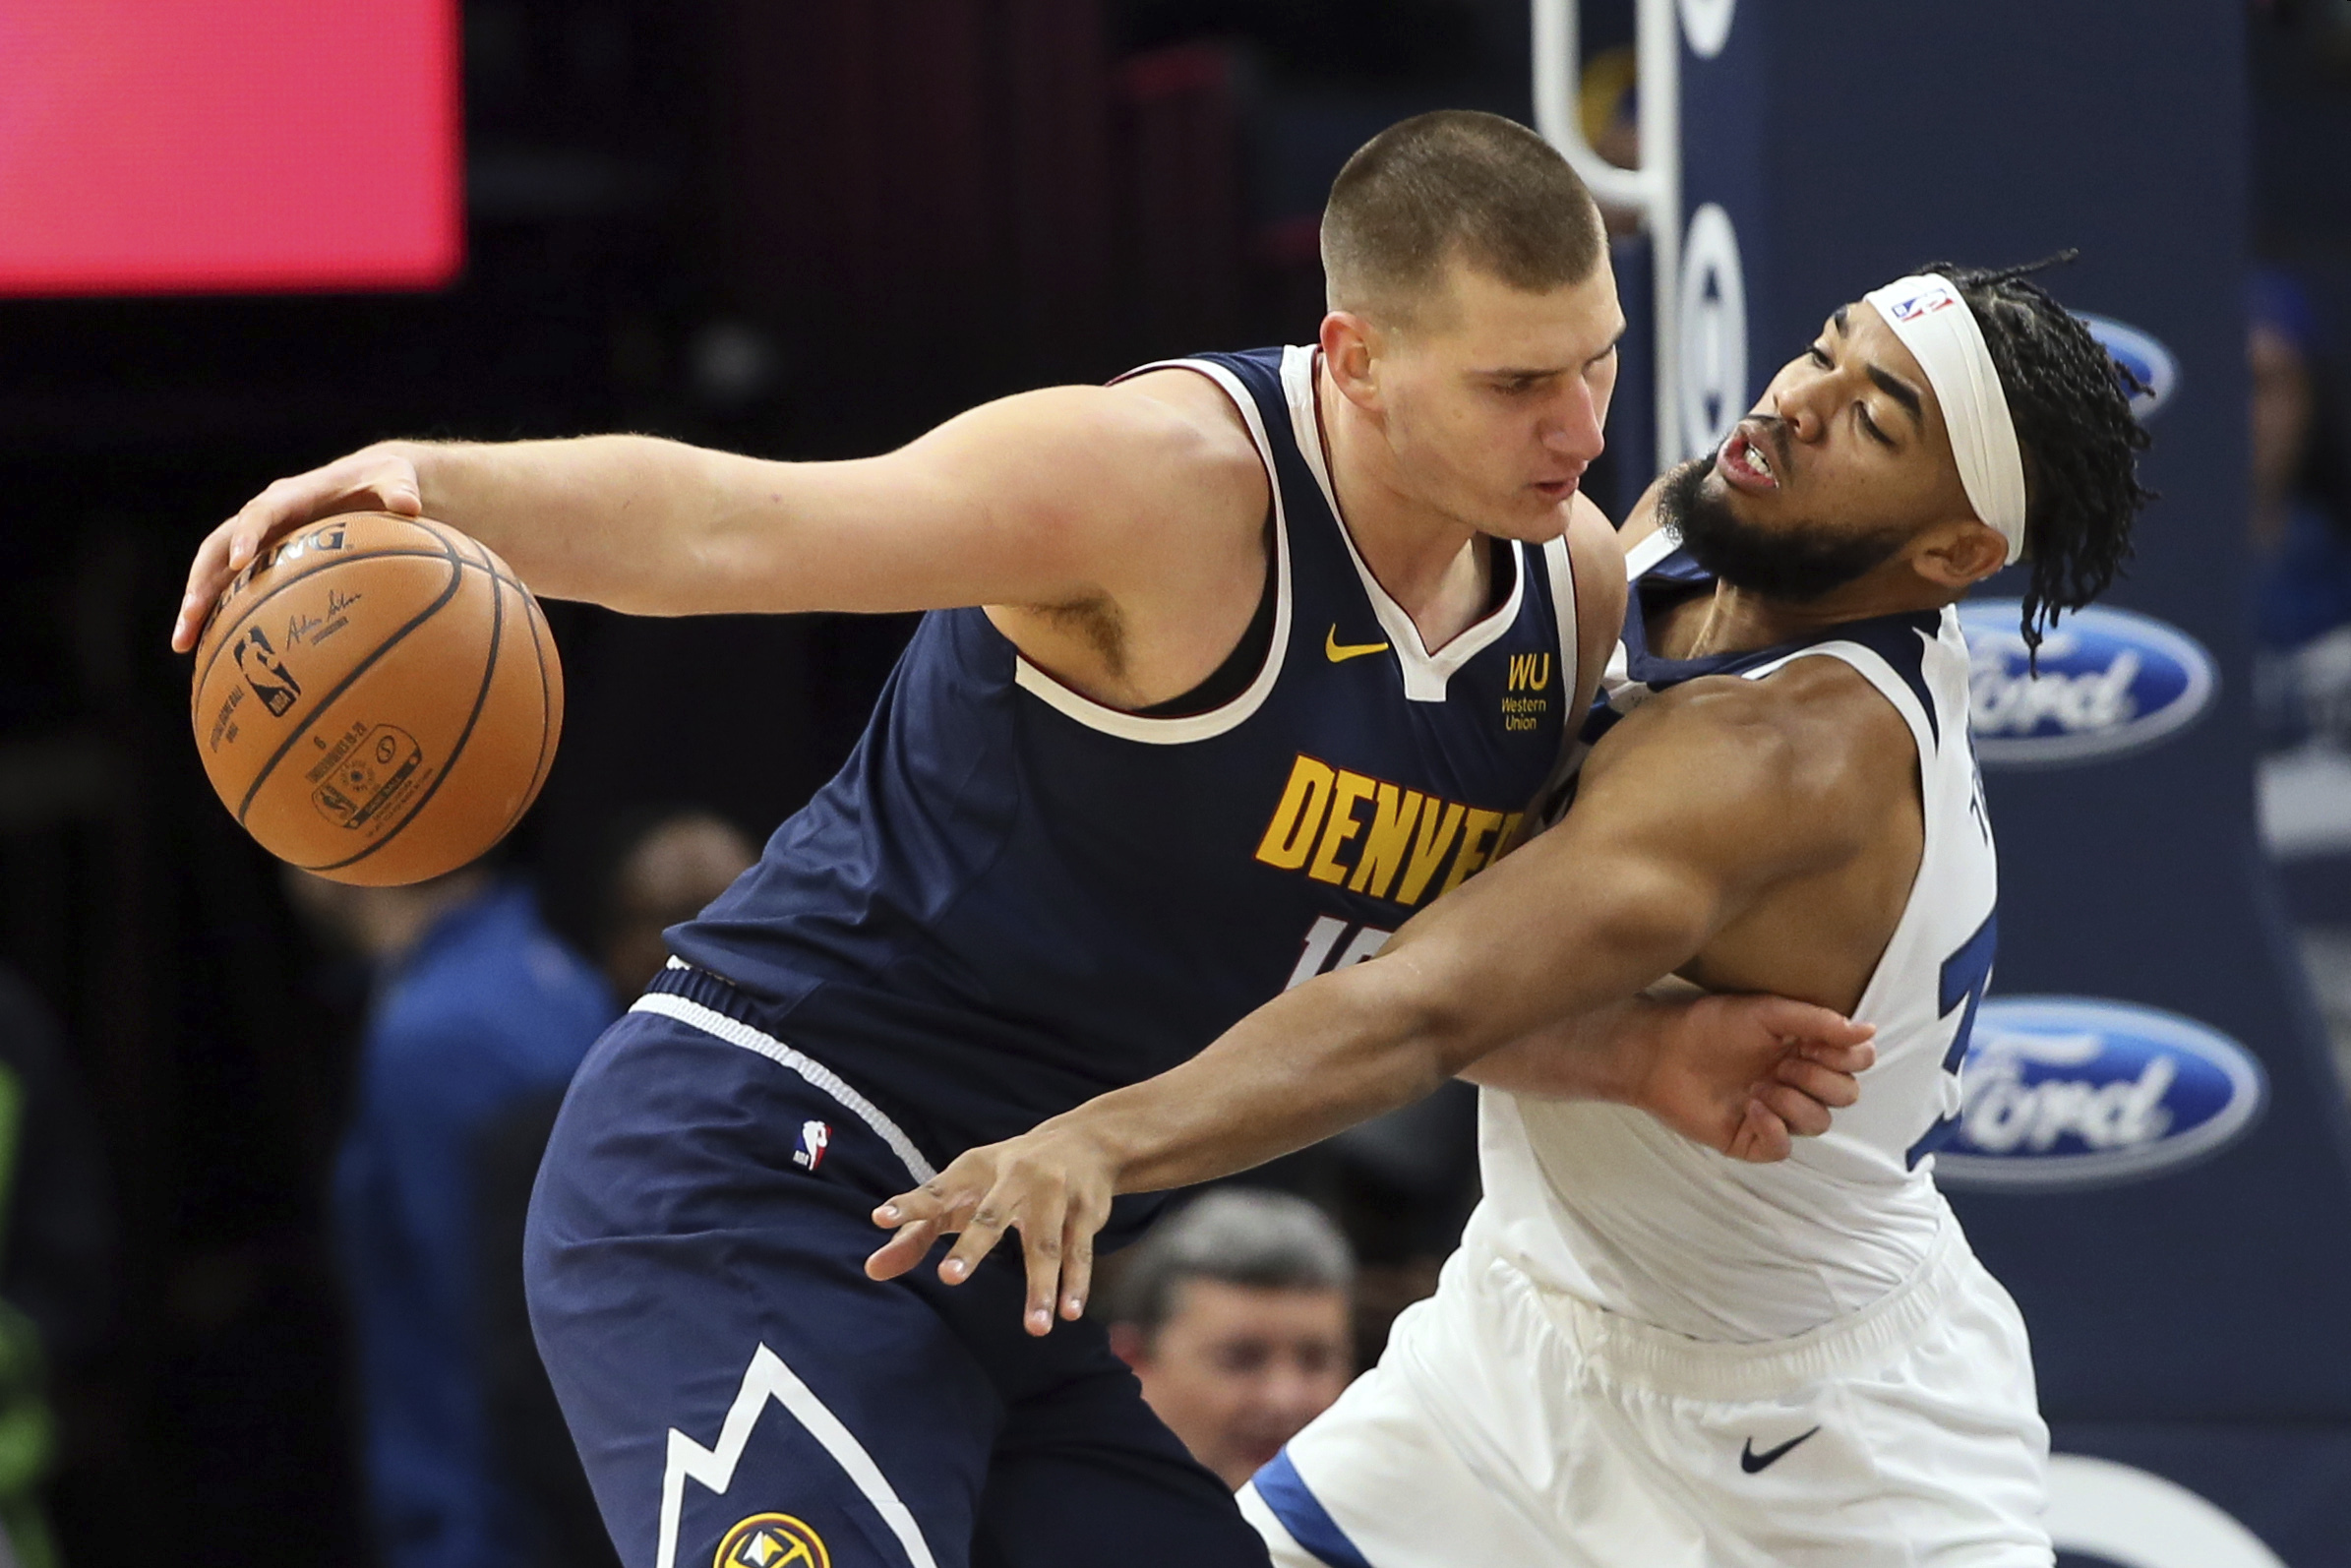 Nikola Jokic has been coming through in the clutch for the Denver Nuggets, who lead the Northwest Division.